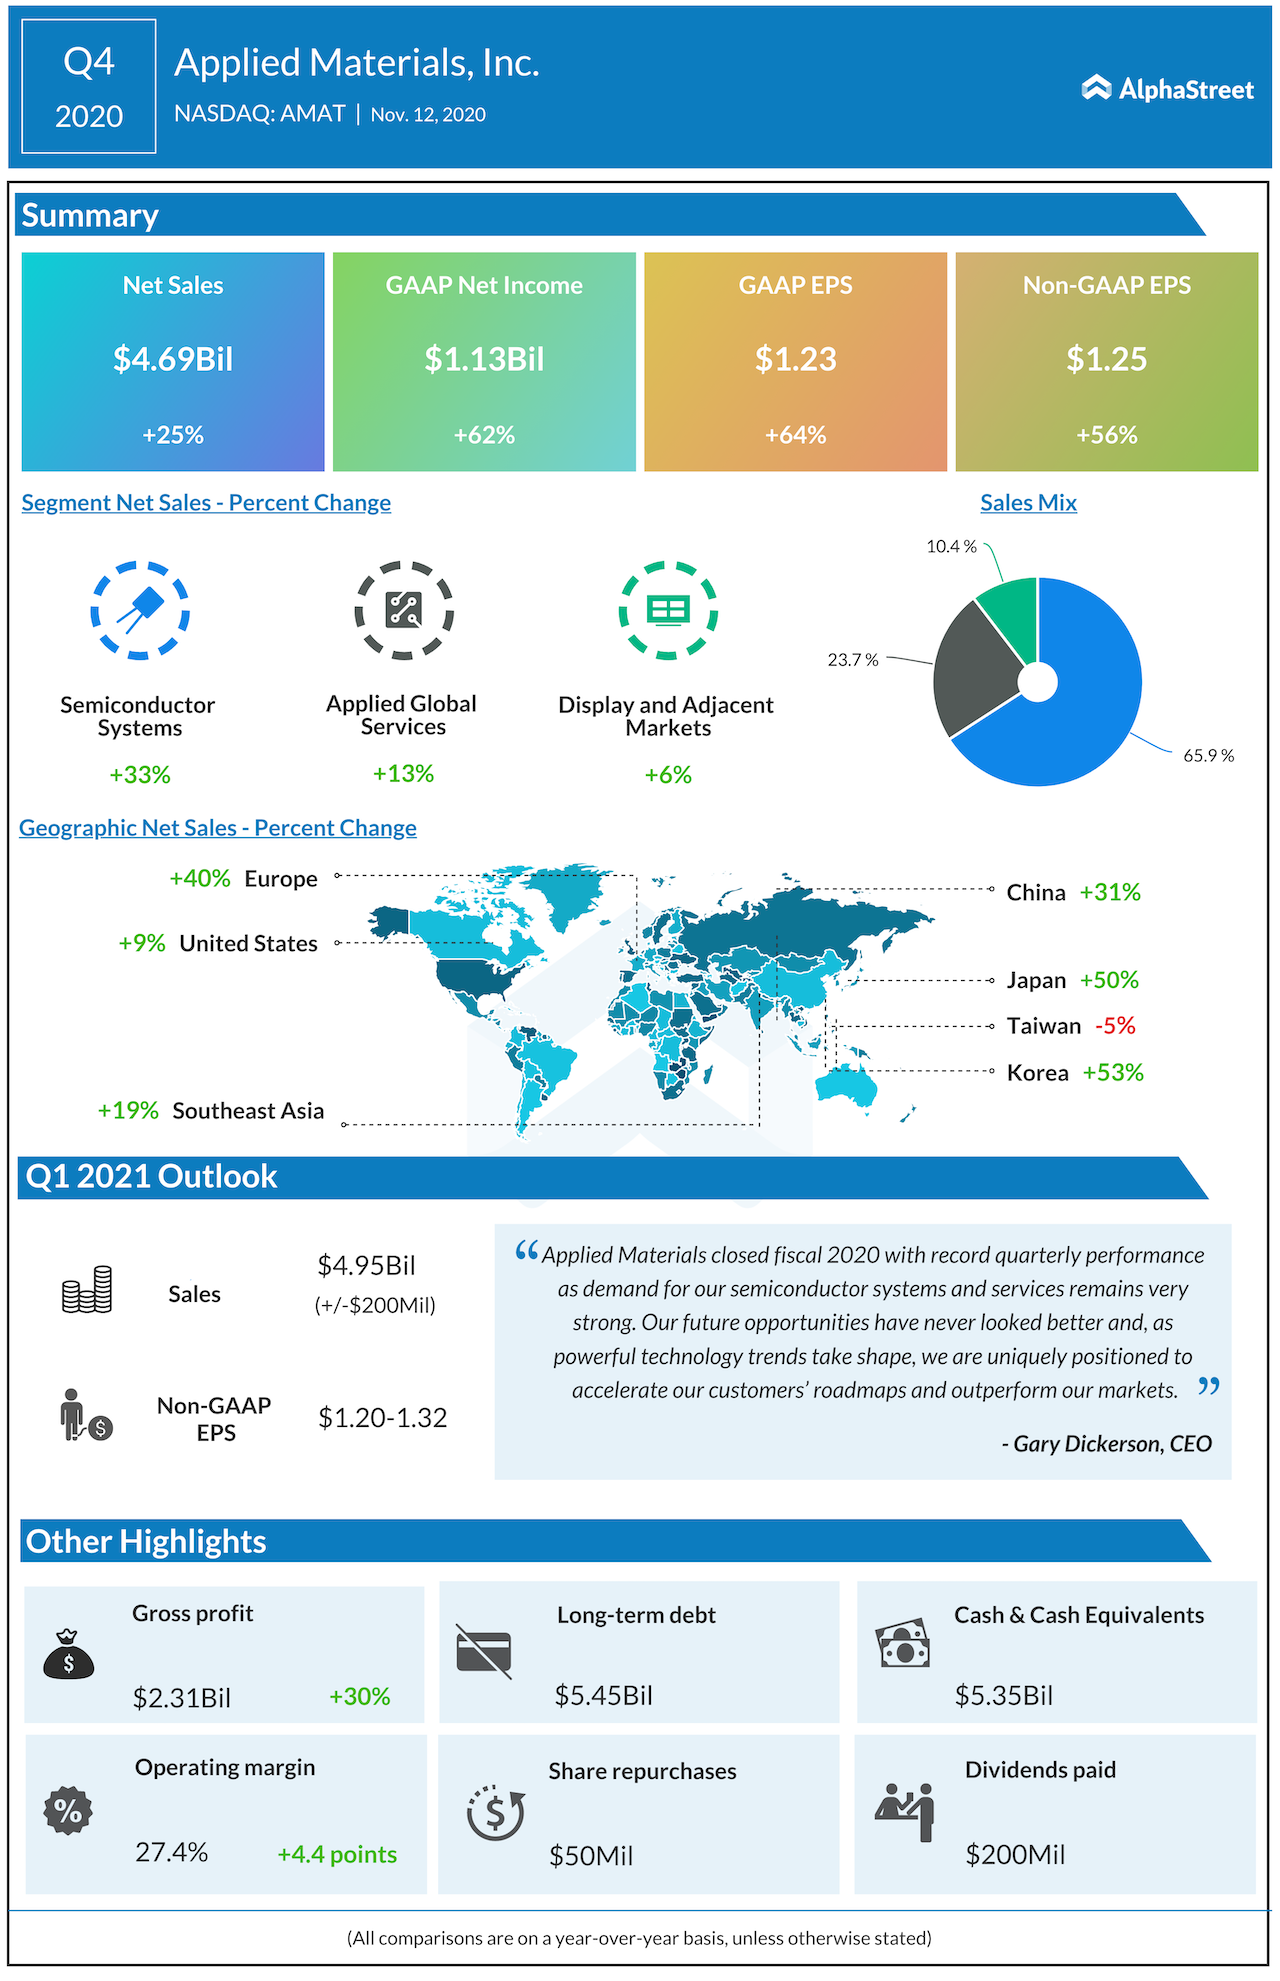 Applied Materials Q4 2020 earnings